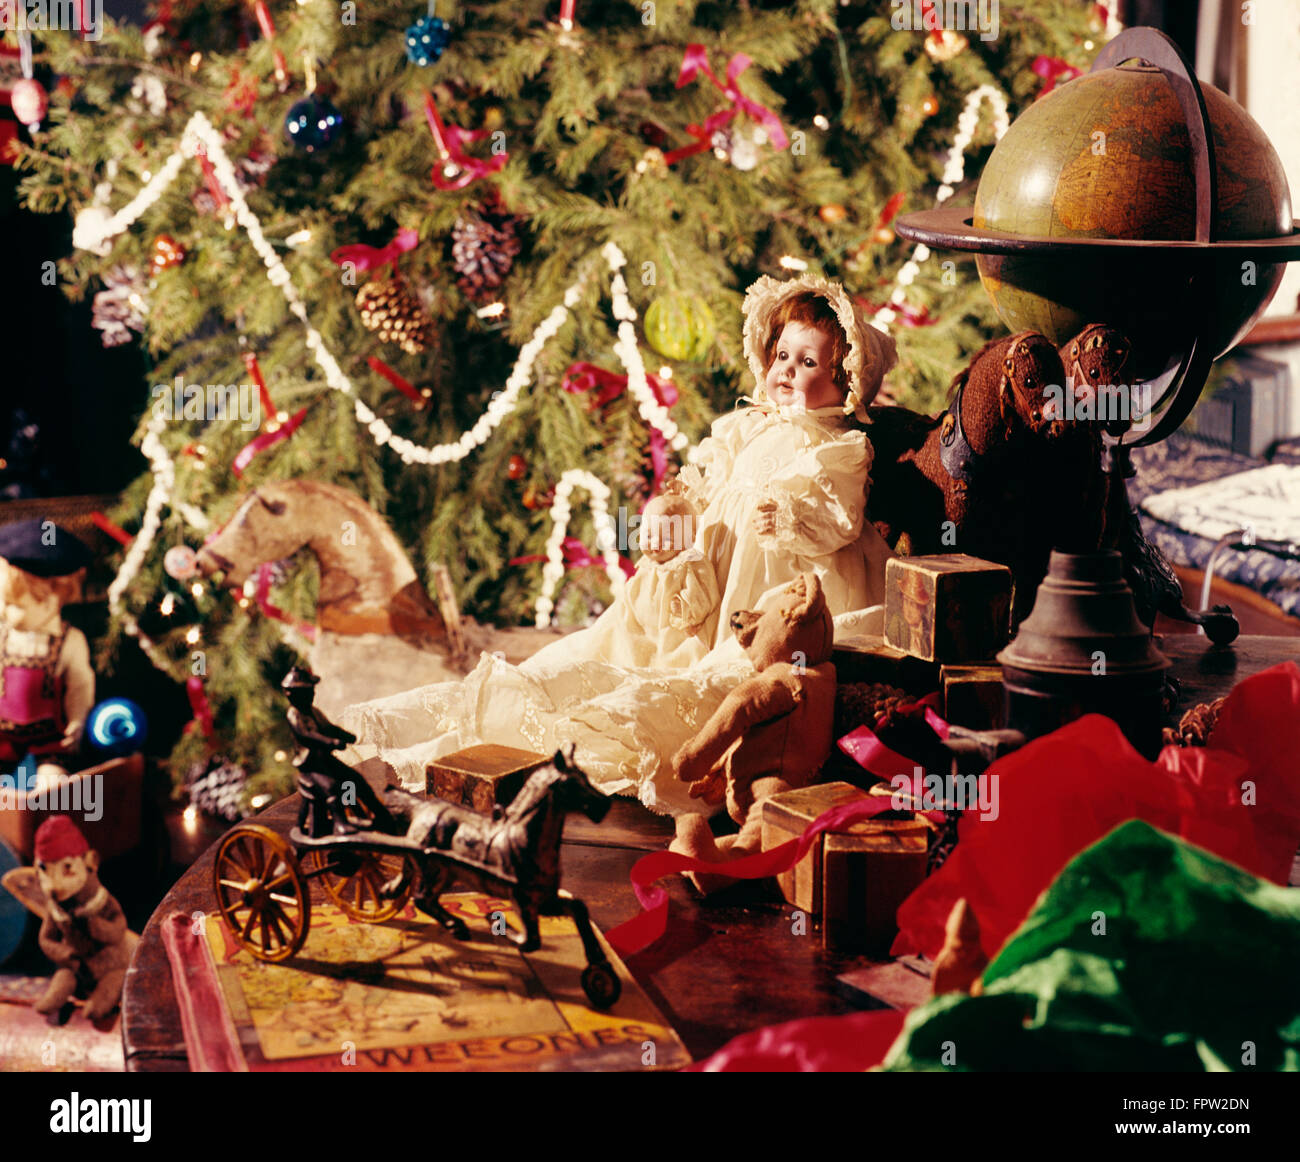 1900s OLD TIME CHRISTMAS TREE AND TOYS Stock Photo: 100125025 - Alamy